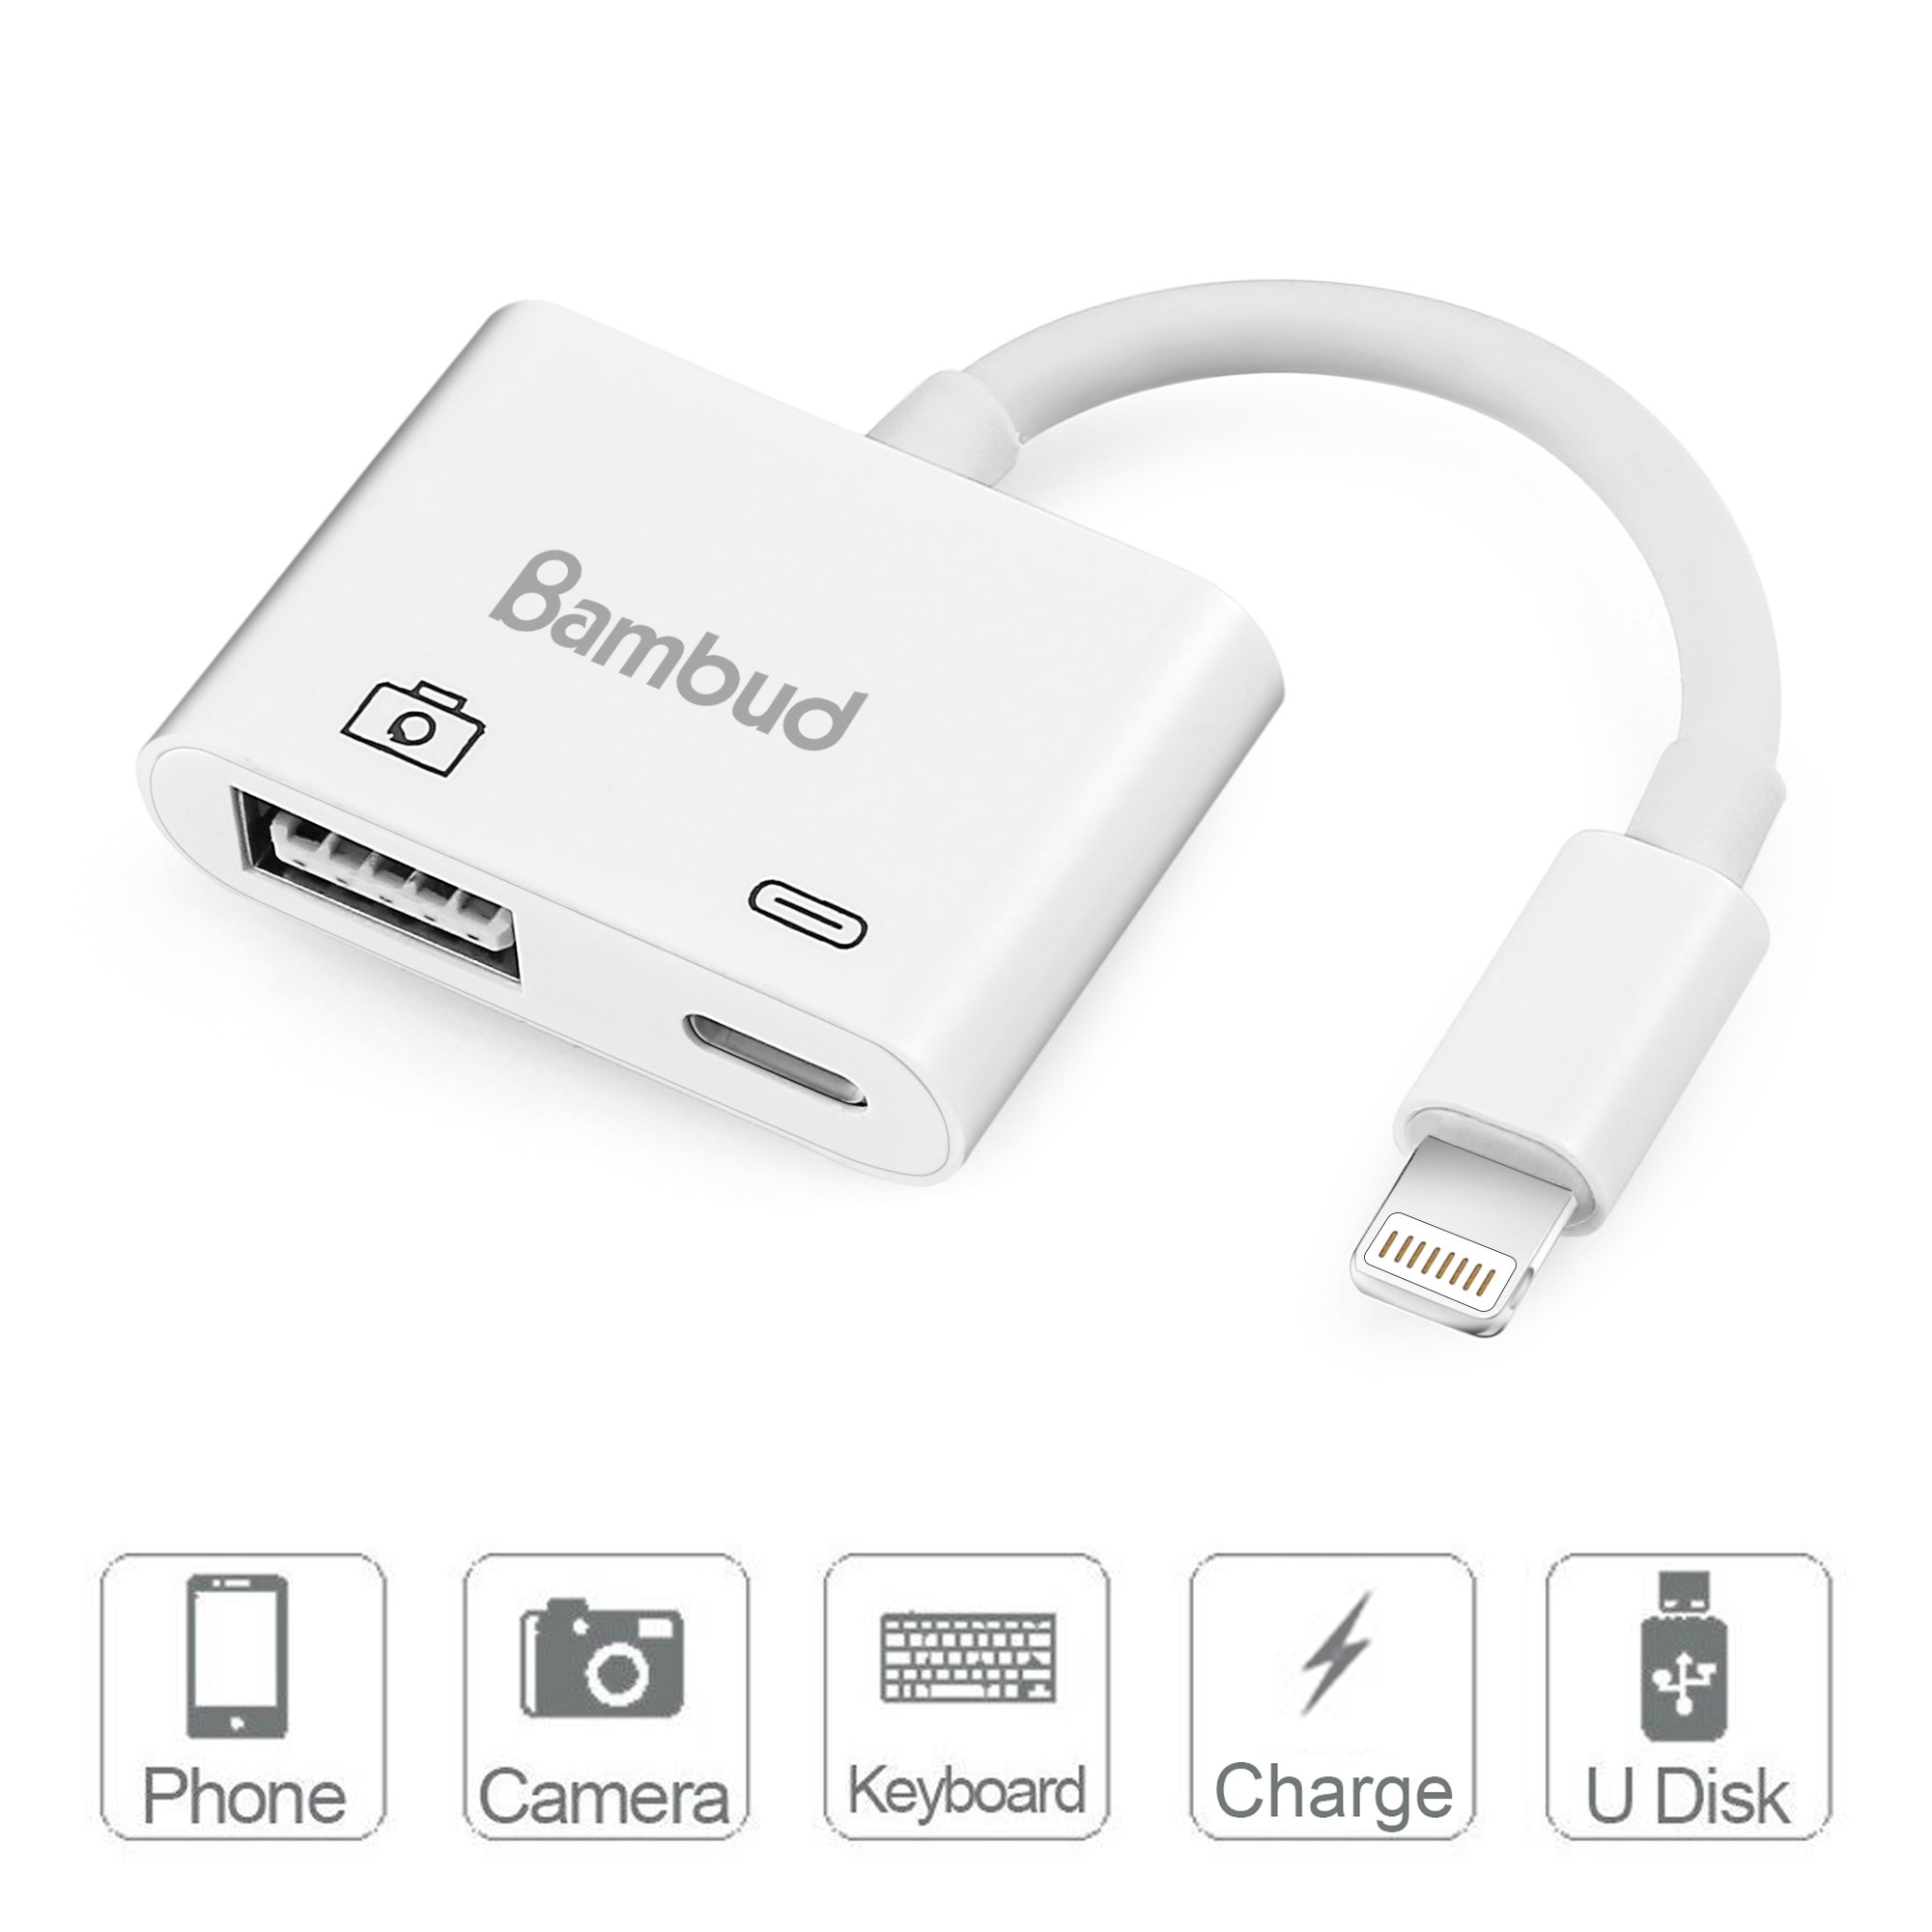 Lightning to USB Camera Adapter, Bambud Lightning to USB 3.0 Female OTG Adapter Cable With Charging Interface For iPad mini Air Pro and iPhone X/8/8plus/7/7plus/6/6s/6plus/6s plus/5/5c/5s